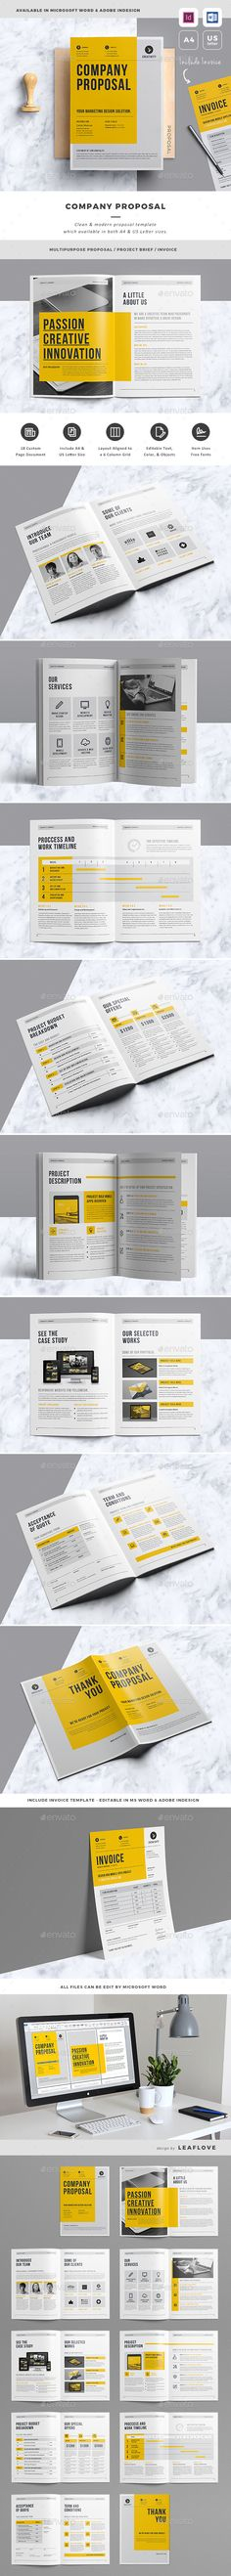 3 Proposal Bundle Template - project proposal word template